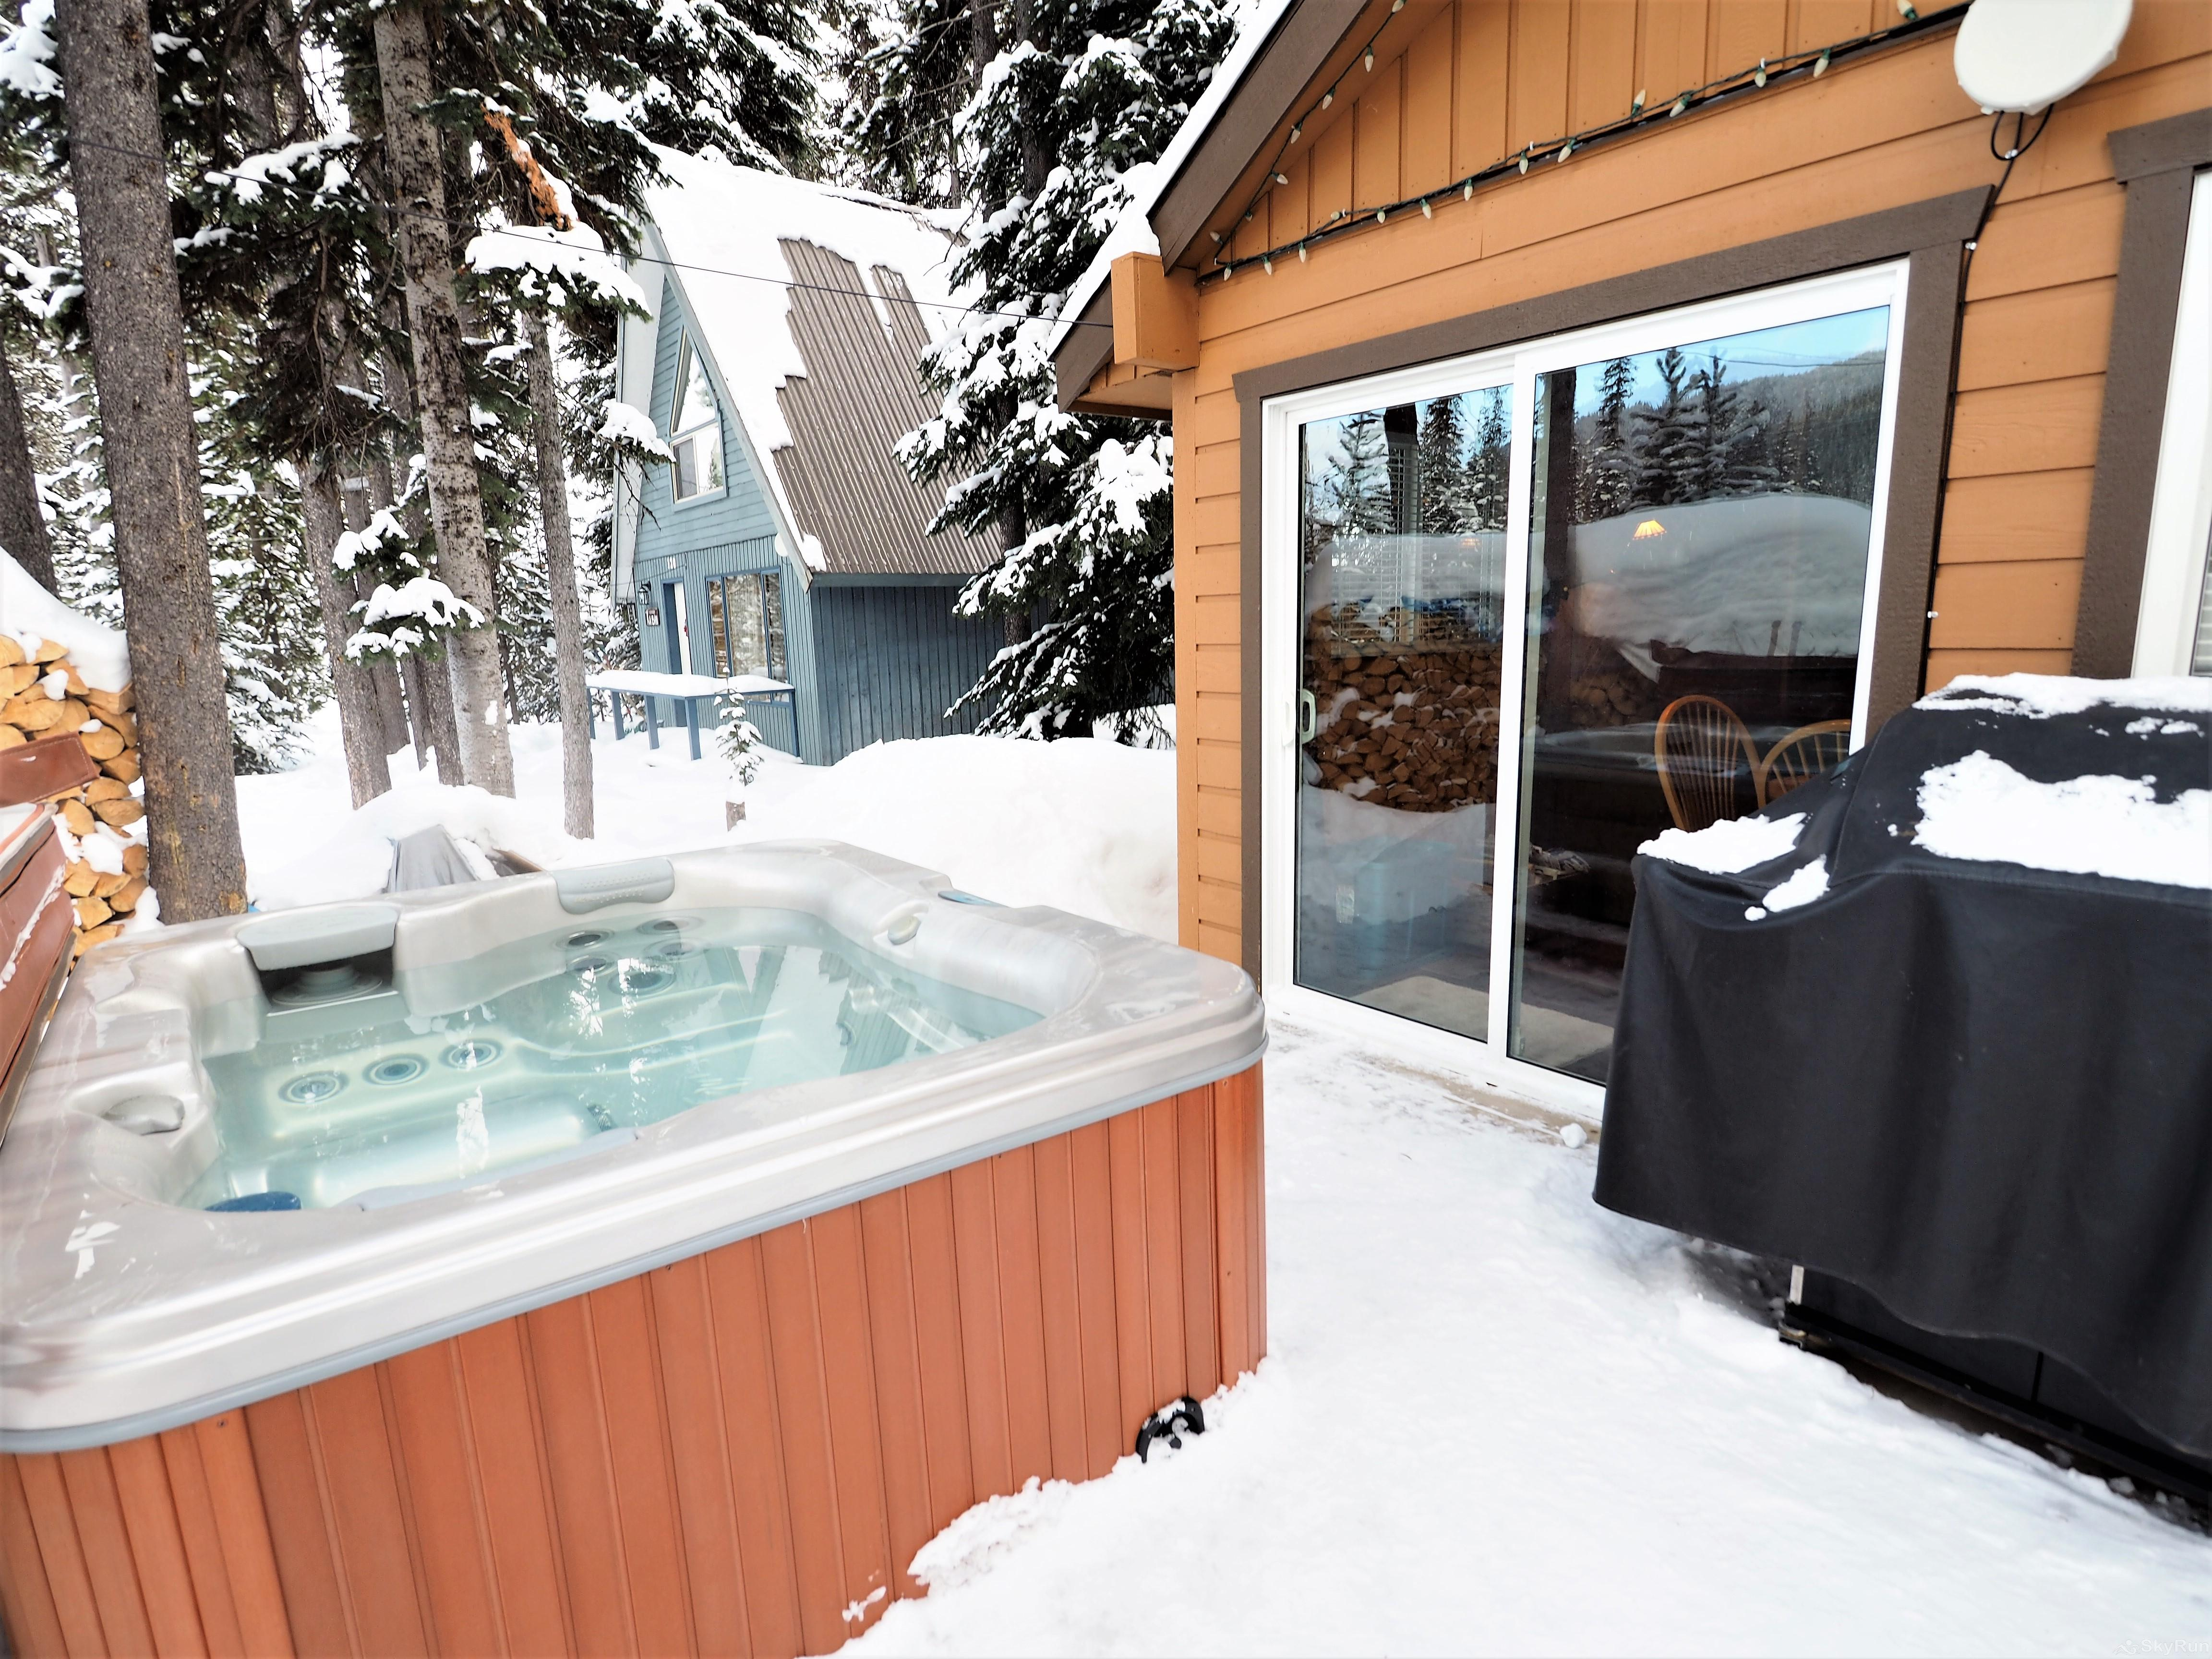 Mountain Air Retreat Private hot tub, BBQ and entrance to the living room